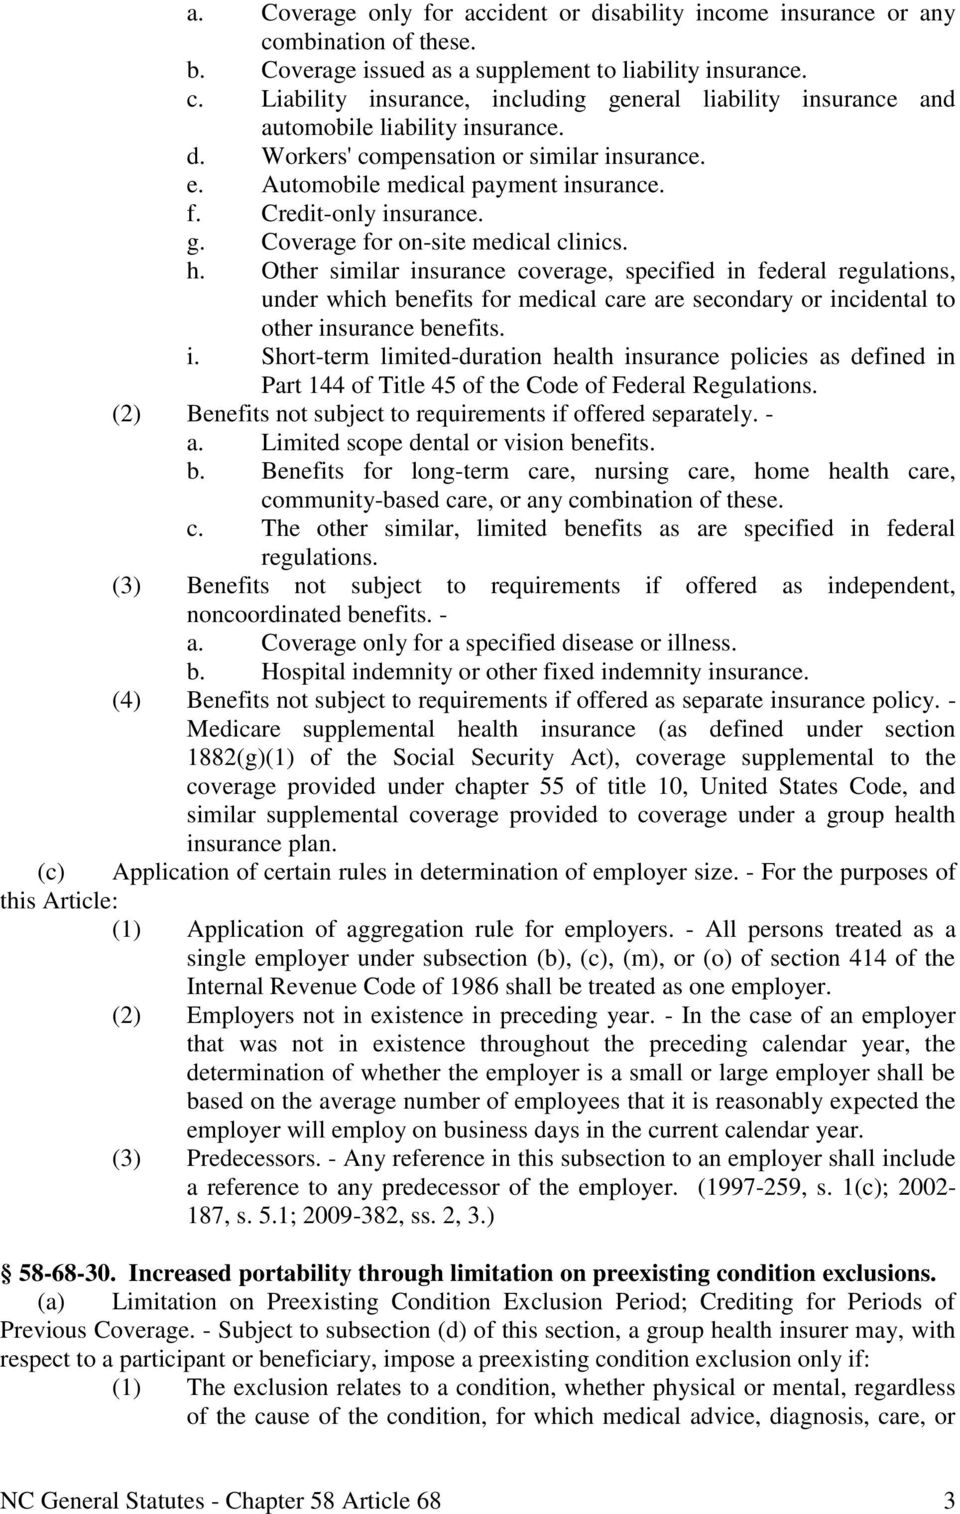 Other similar insurance coverage, specified in federal regulations, under which benefits for medical care are secondary or incidental to other insurance benefits. i. Short-term limited-duration health insurance policies as defined in Part 144 of Title 45 of the Code of Federal Regulations.